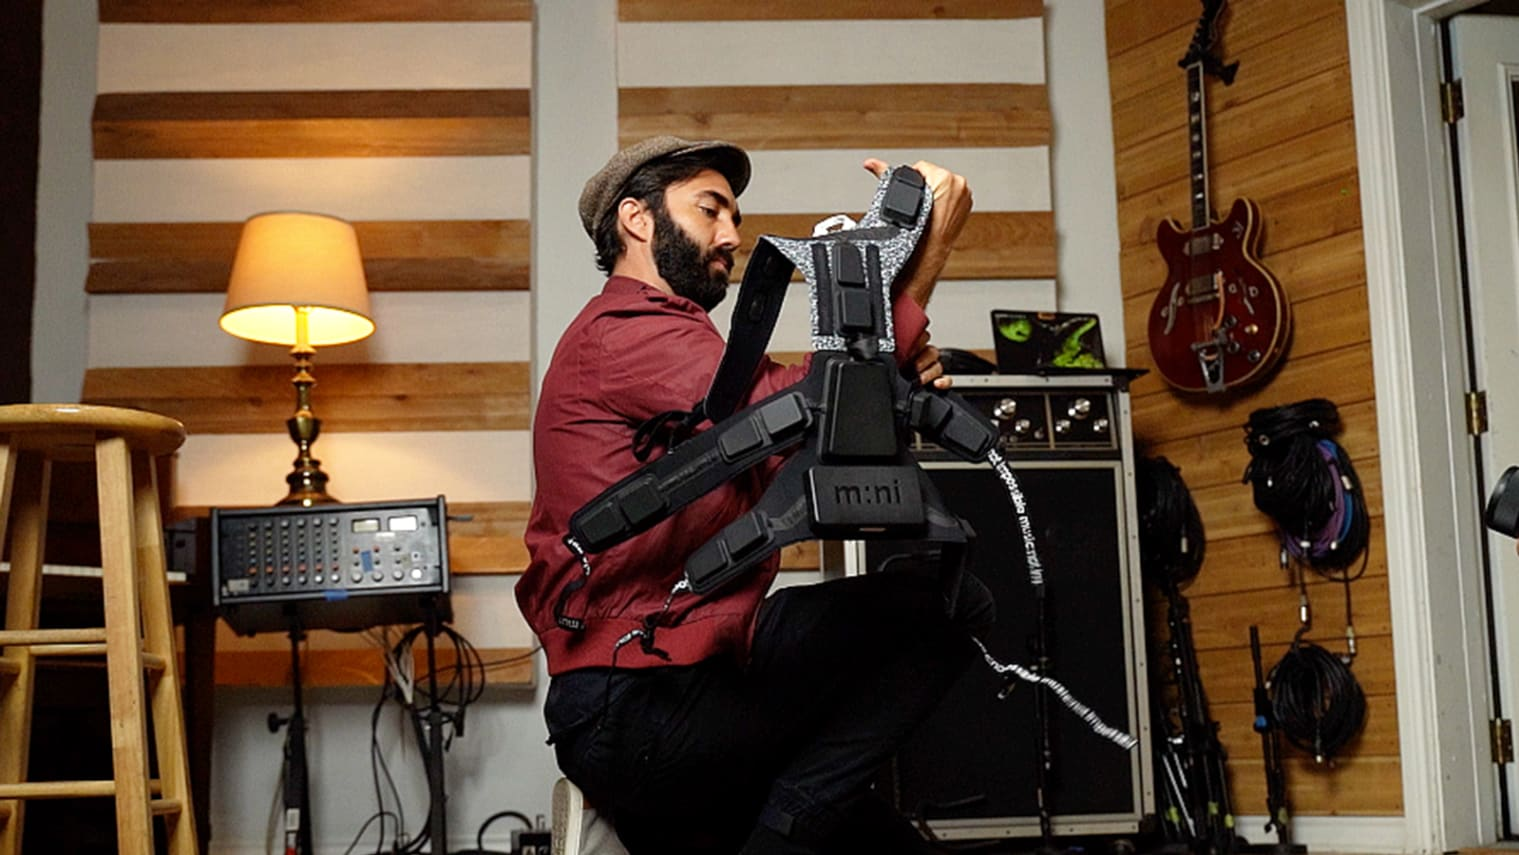 Vibrating suit allows deaf people to 'feel' music